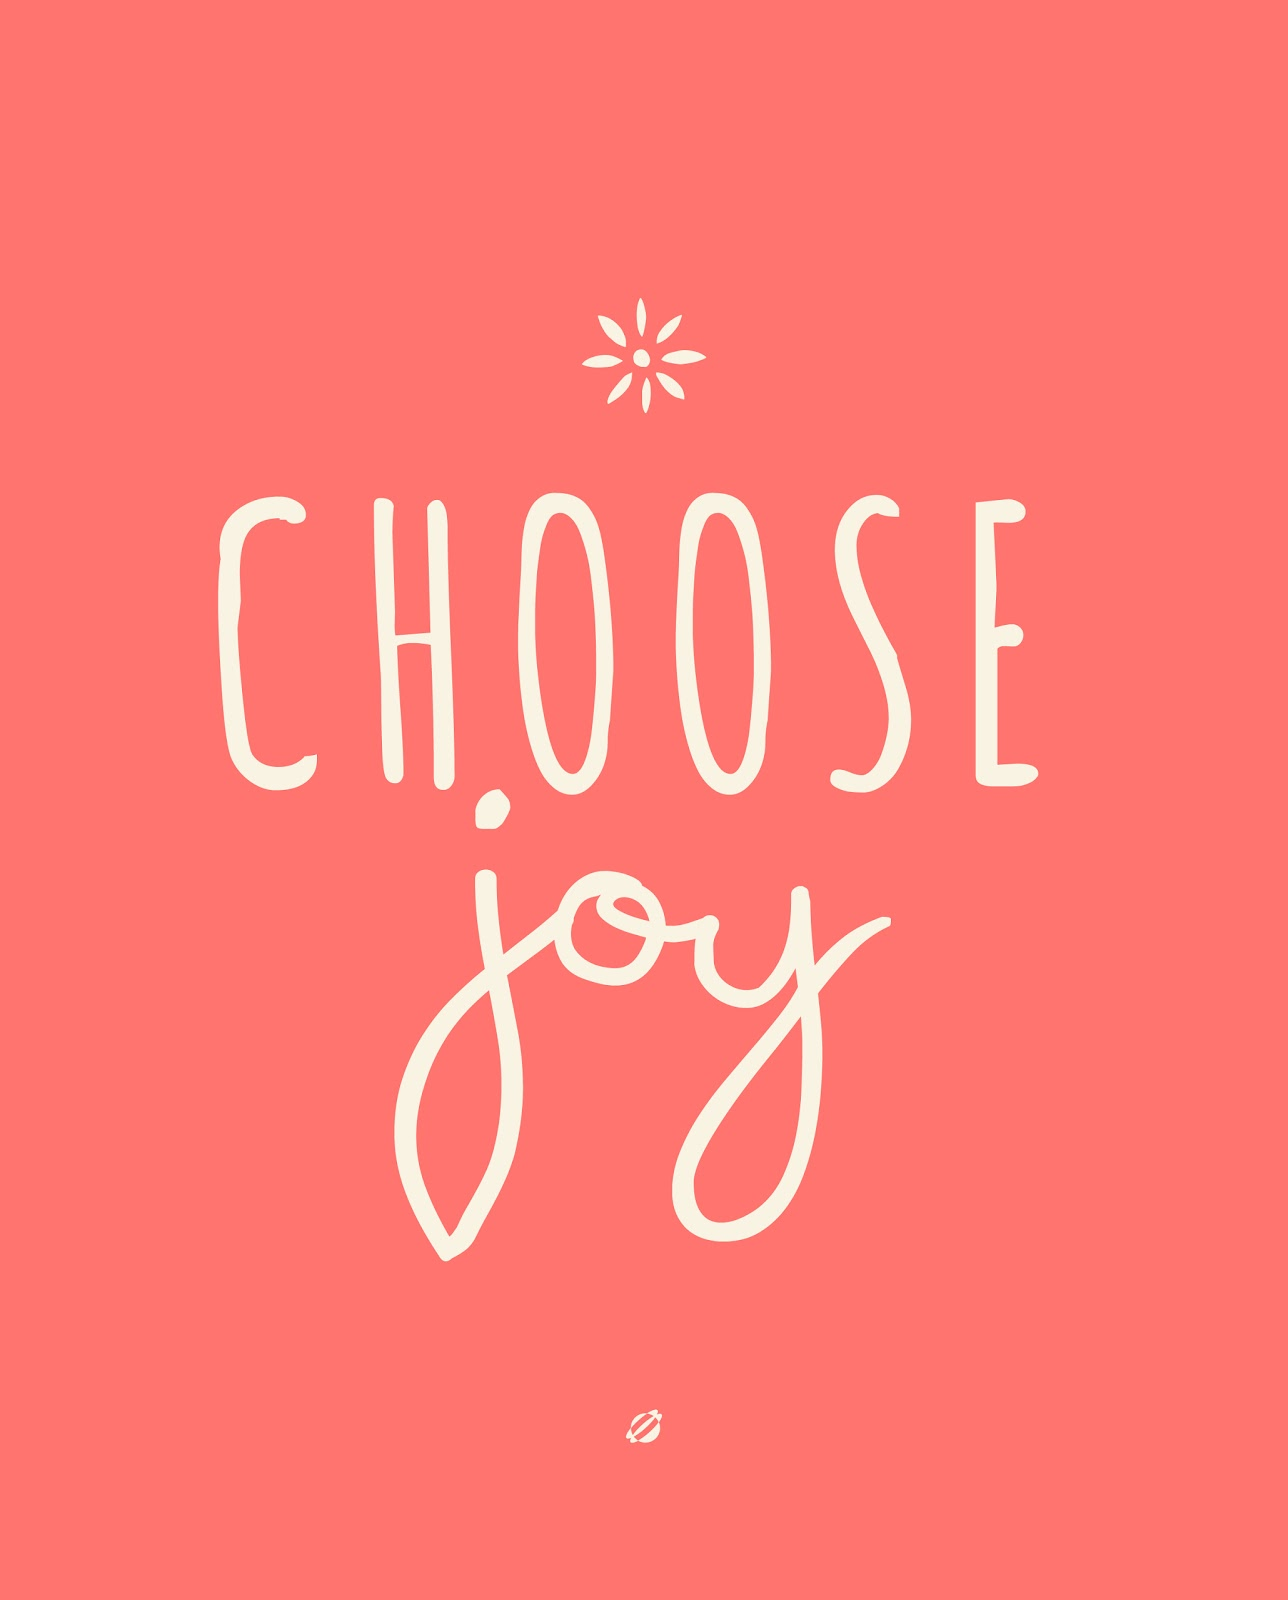 LostBumblebee: What Are You Going To Do? Choose Joy.